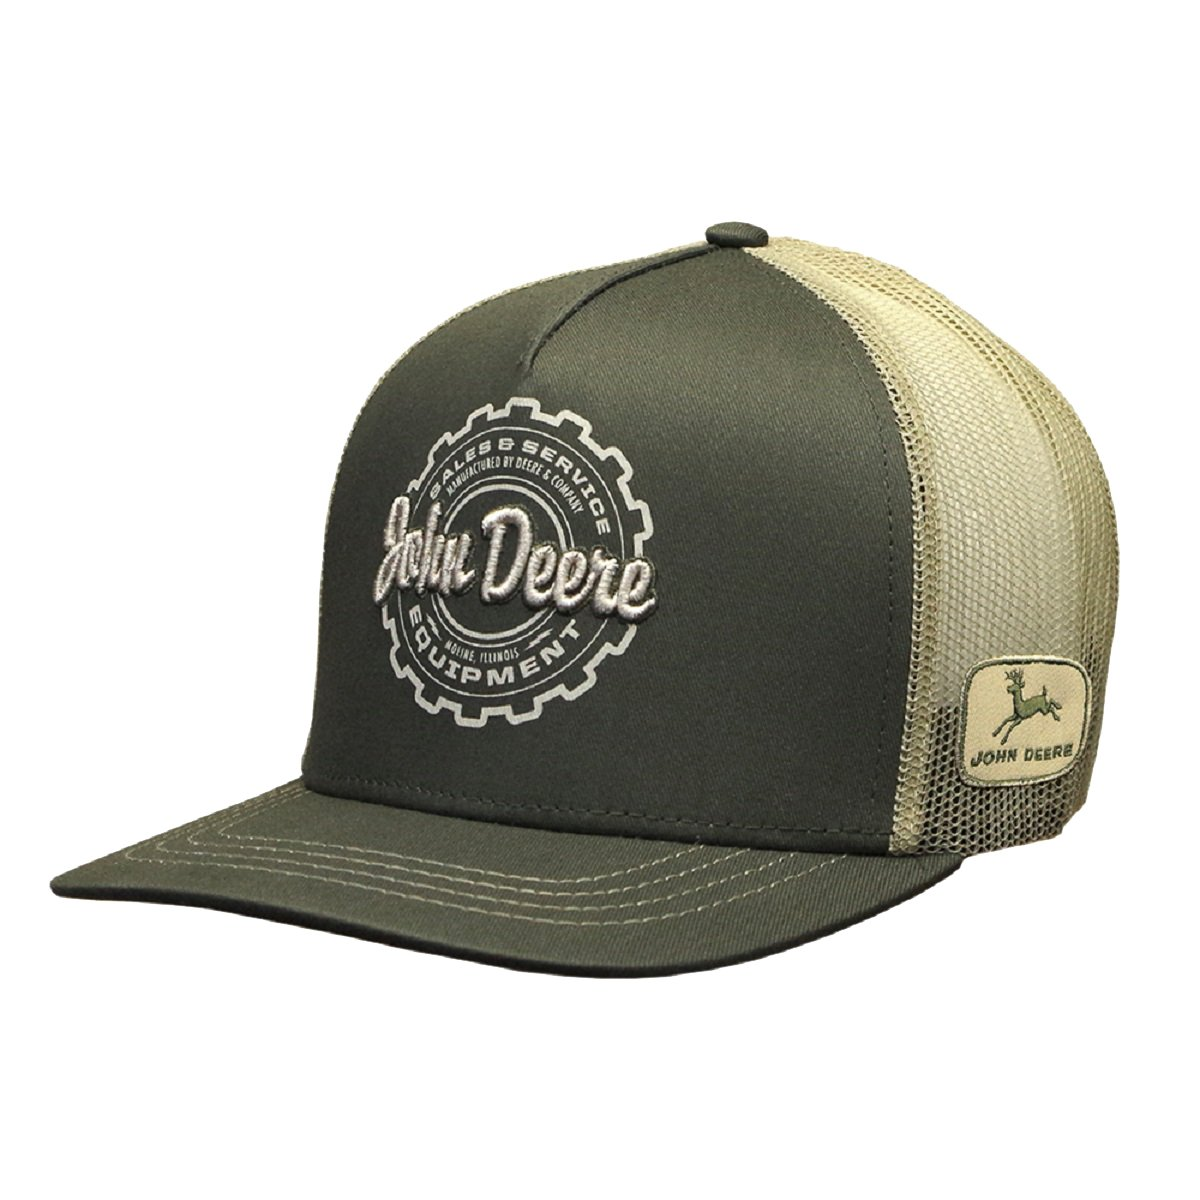 Brand Sales and Service Equipment Snapback Hat